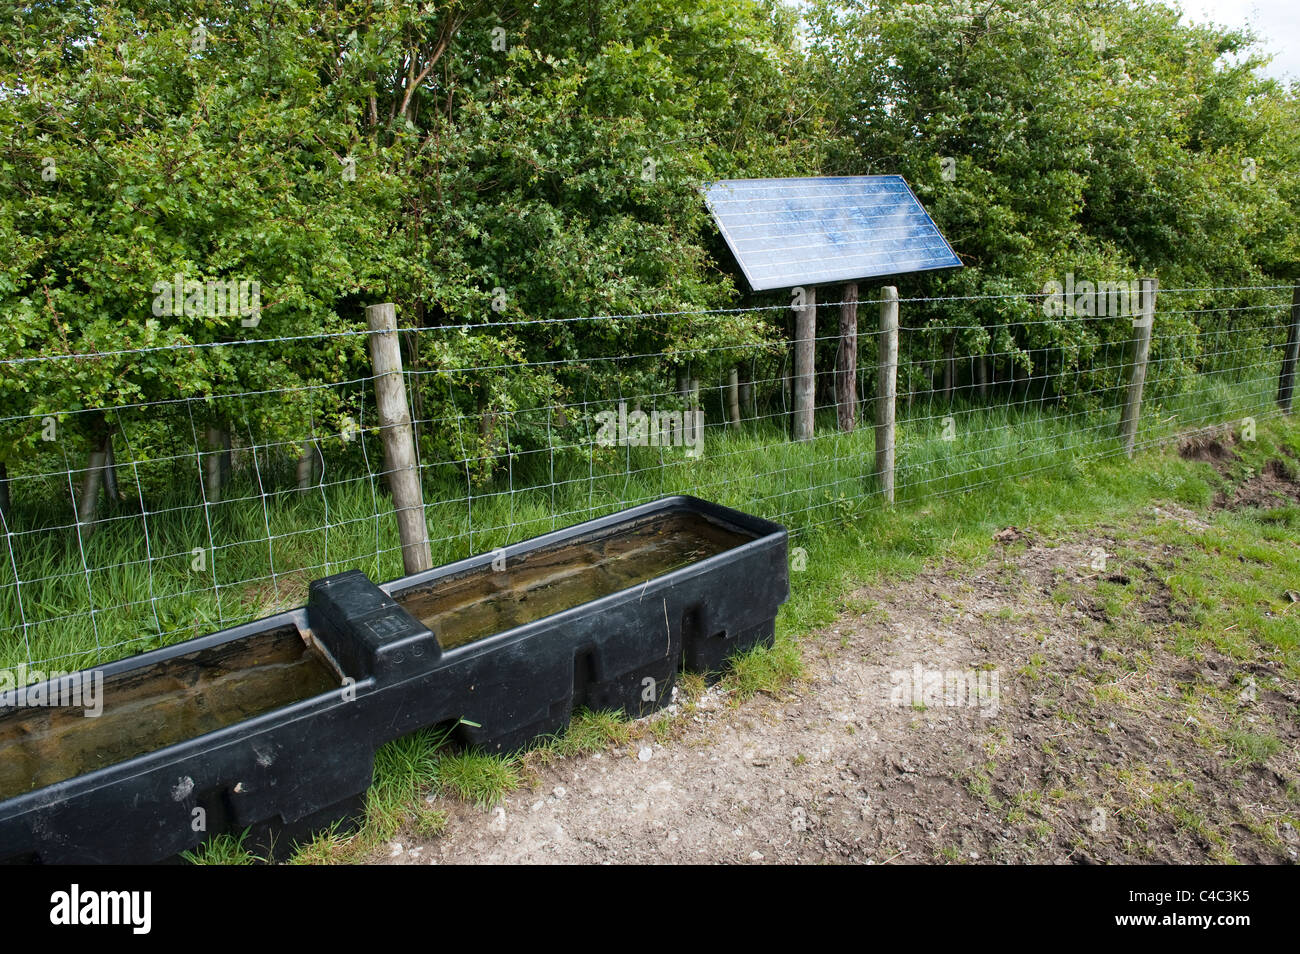 Livestock drinking trough, filled with solar powered pump. - Stock Image